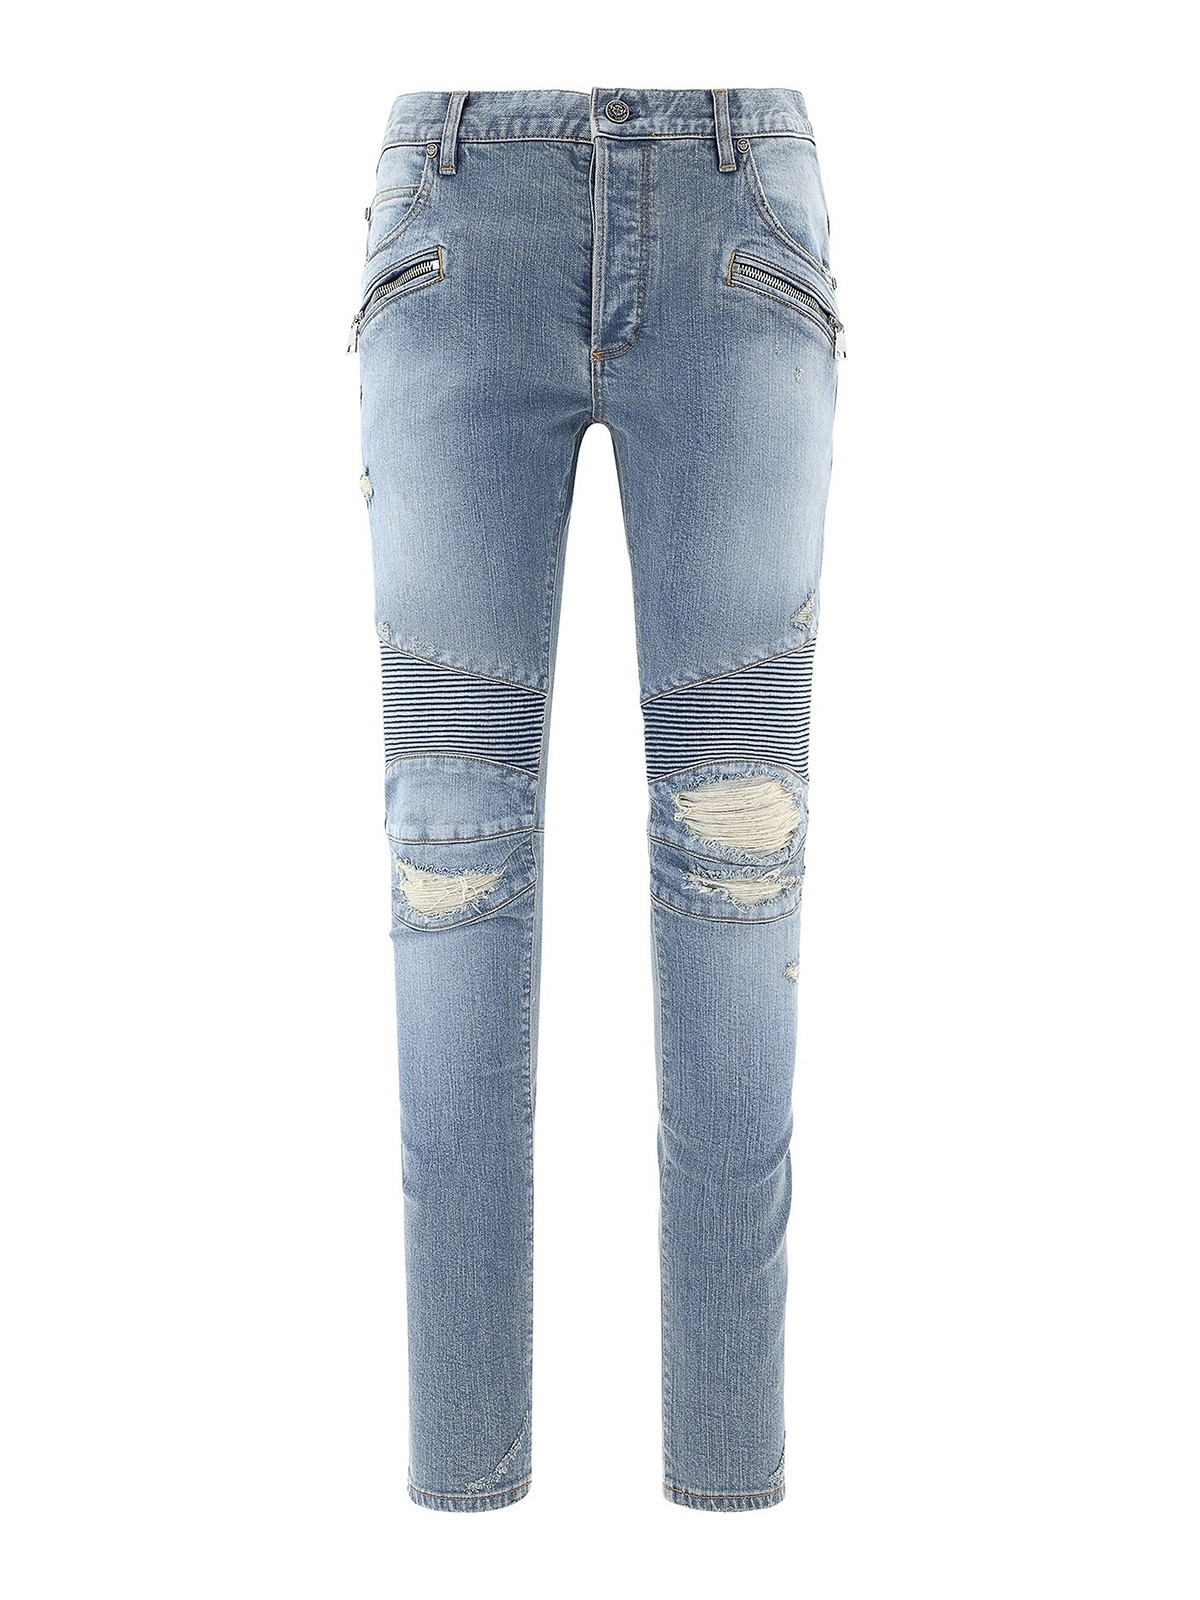 Balmain Cottons RIPPED JEANS